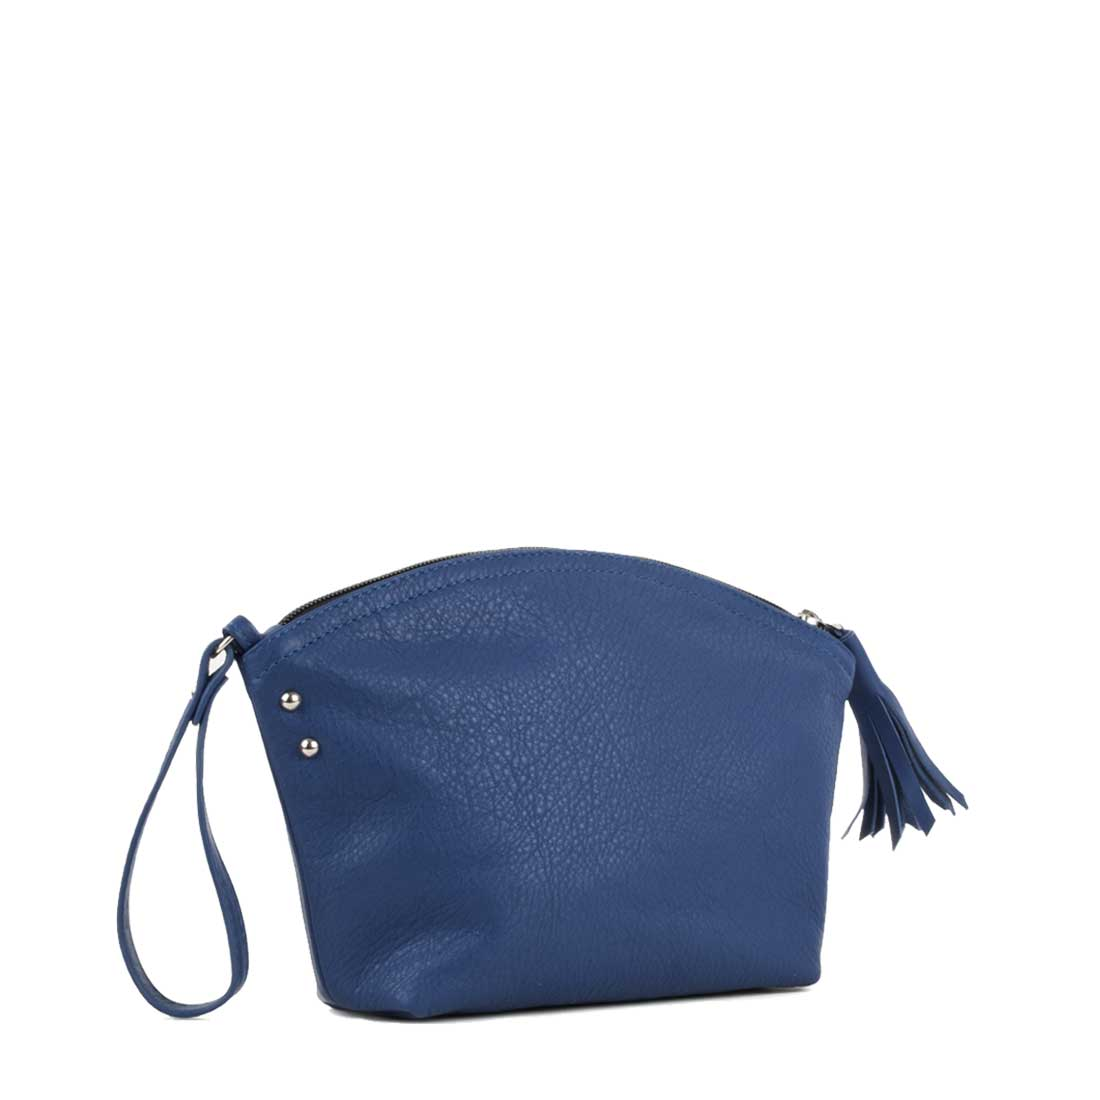 Wrist Bag In Blue Leather